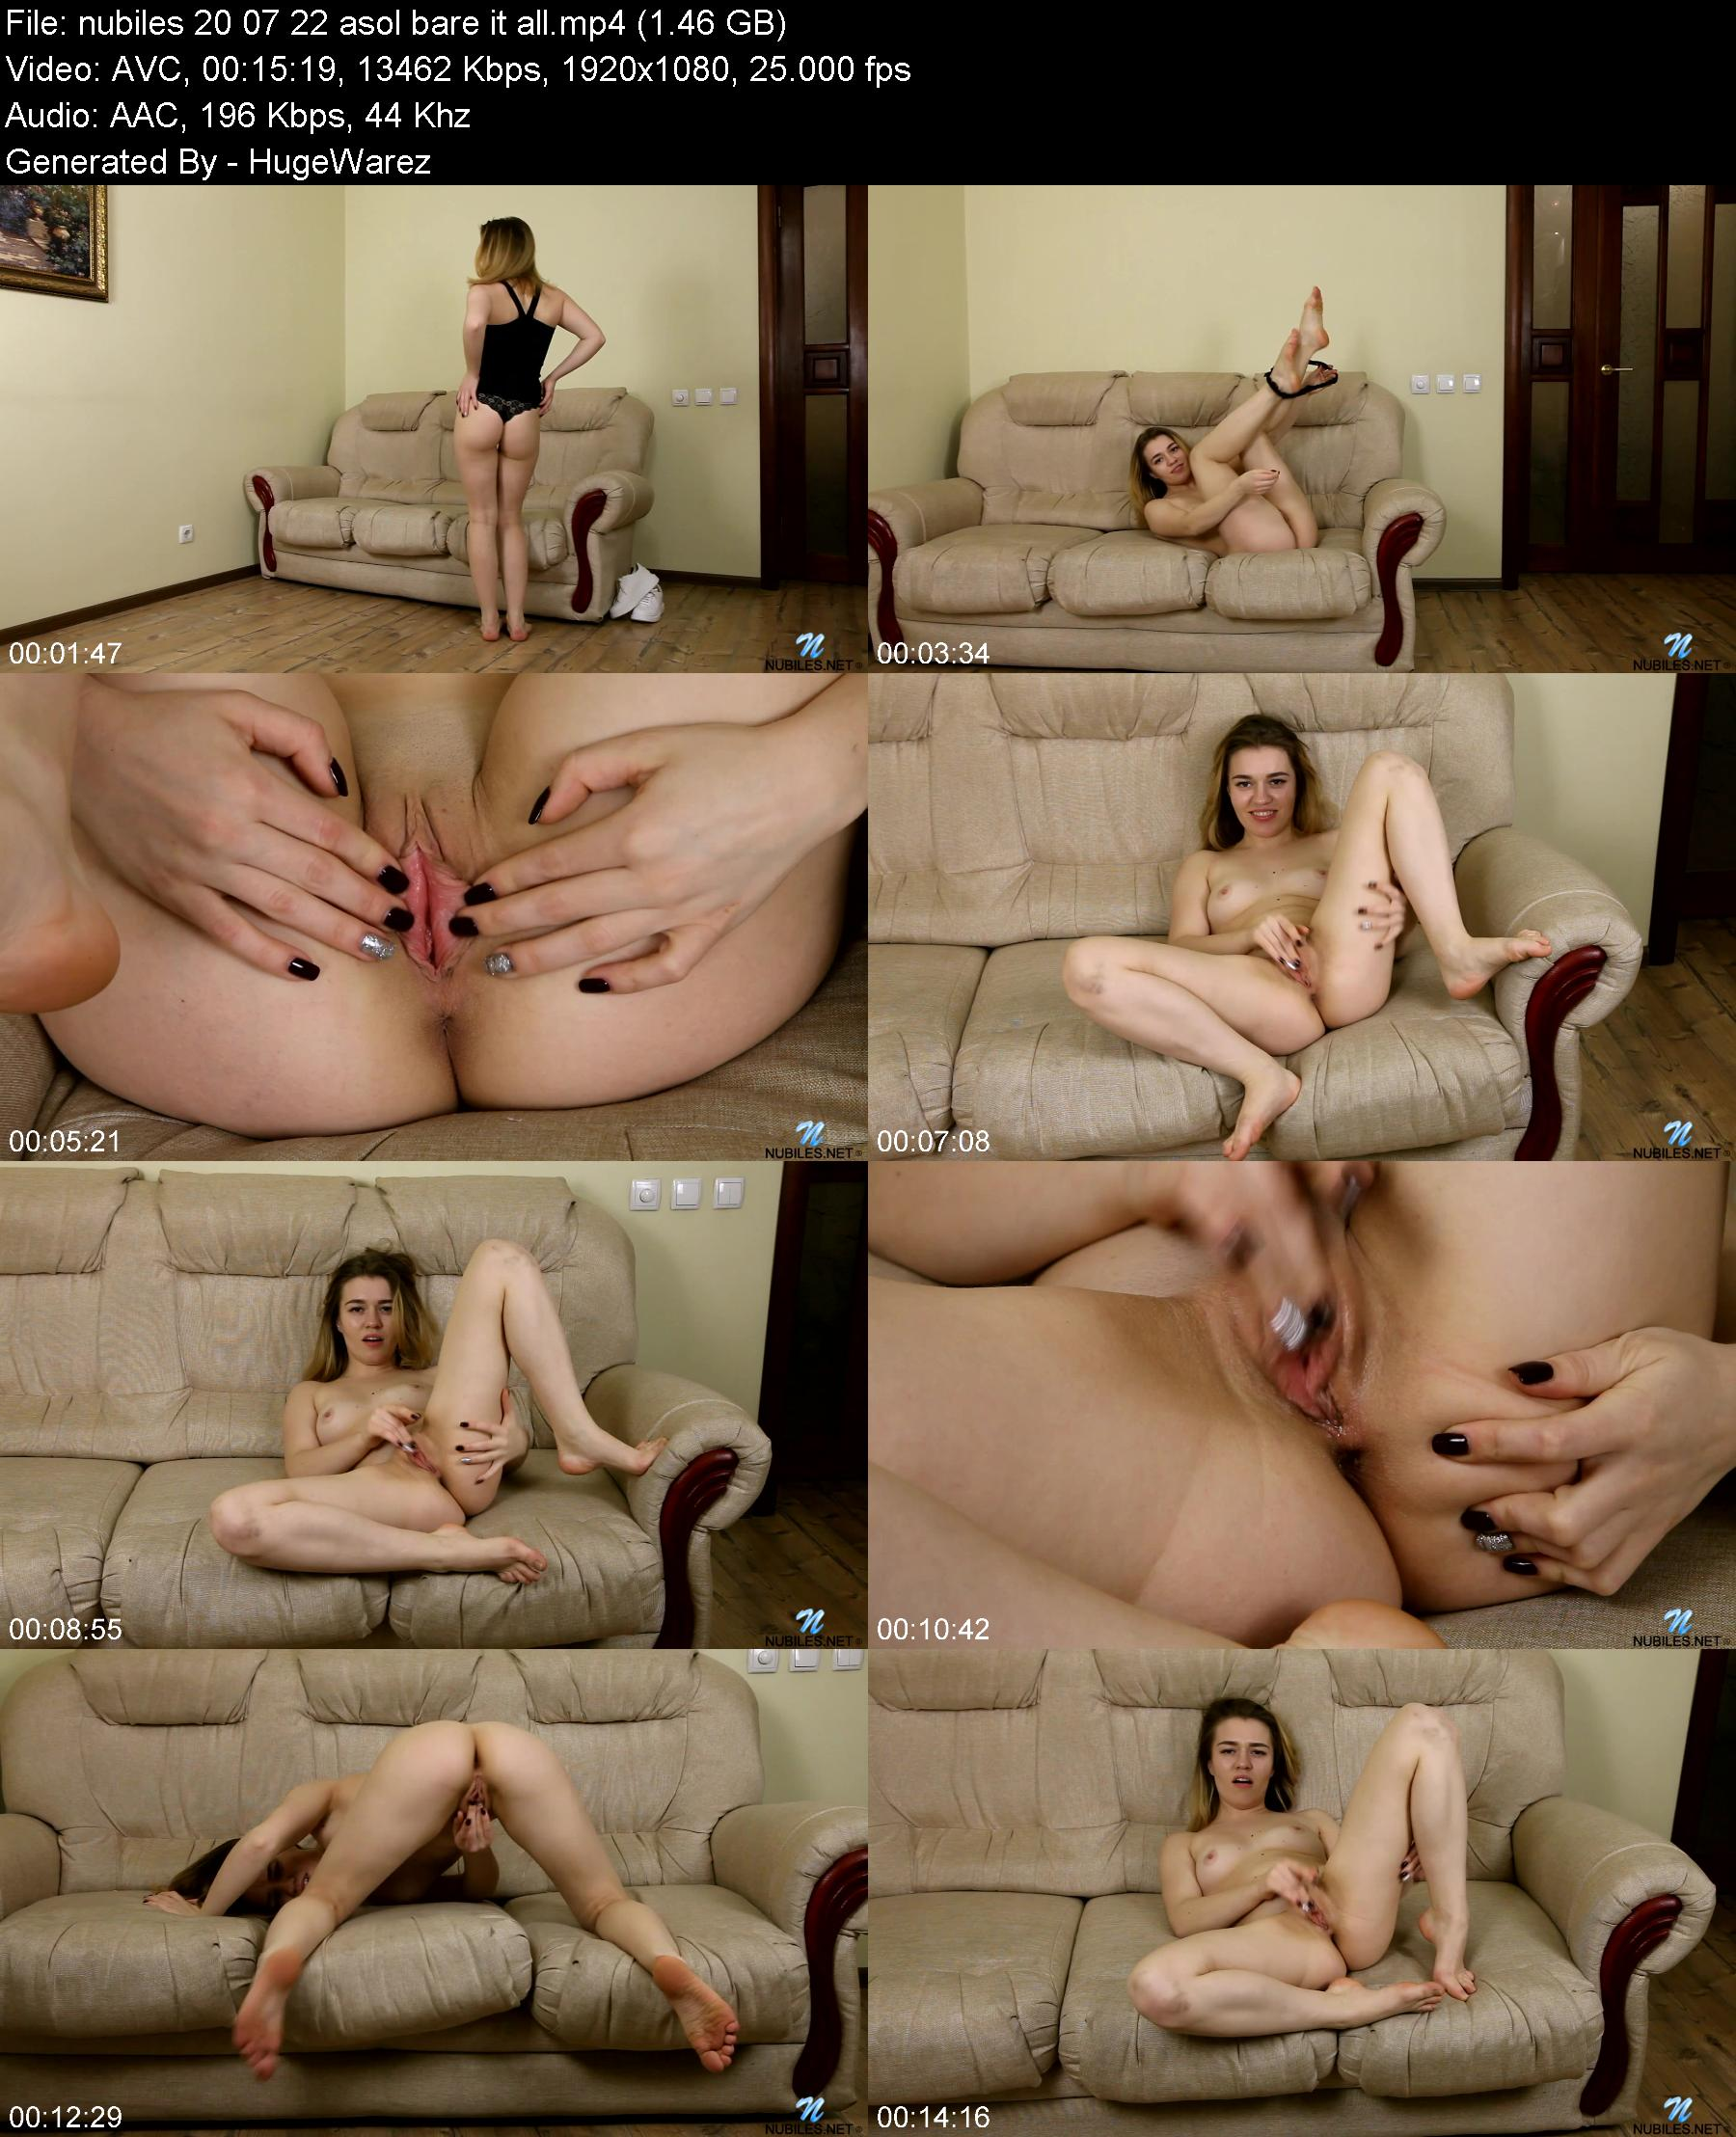 Nubiles 20 07 22 Asol Bare It All XXX 1080p MP4-KTR